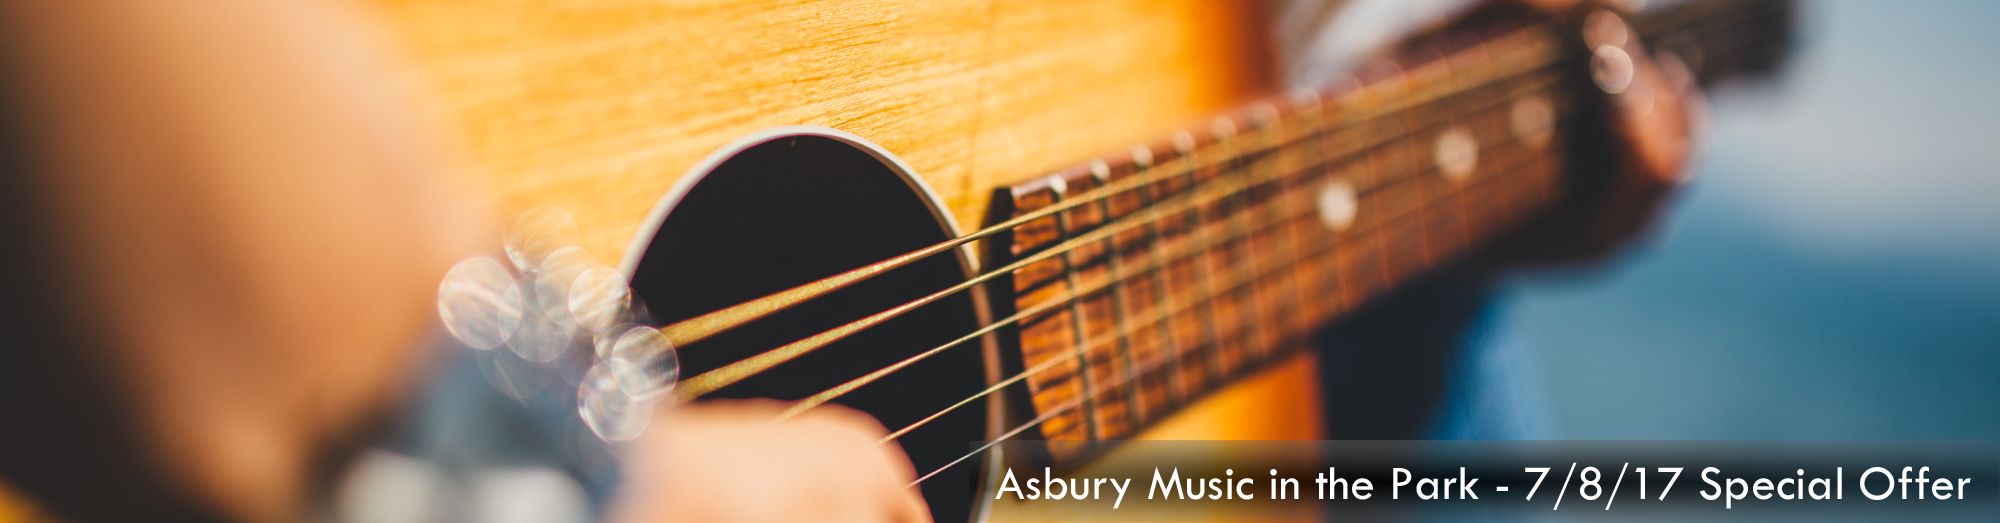 Asbury Music the Park Special Offer